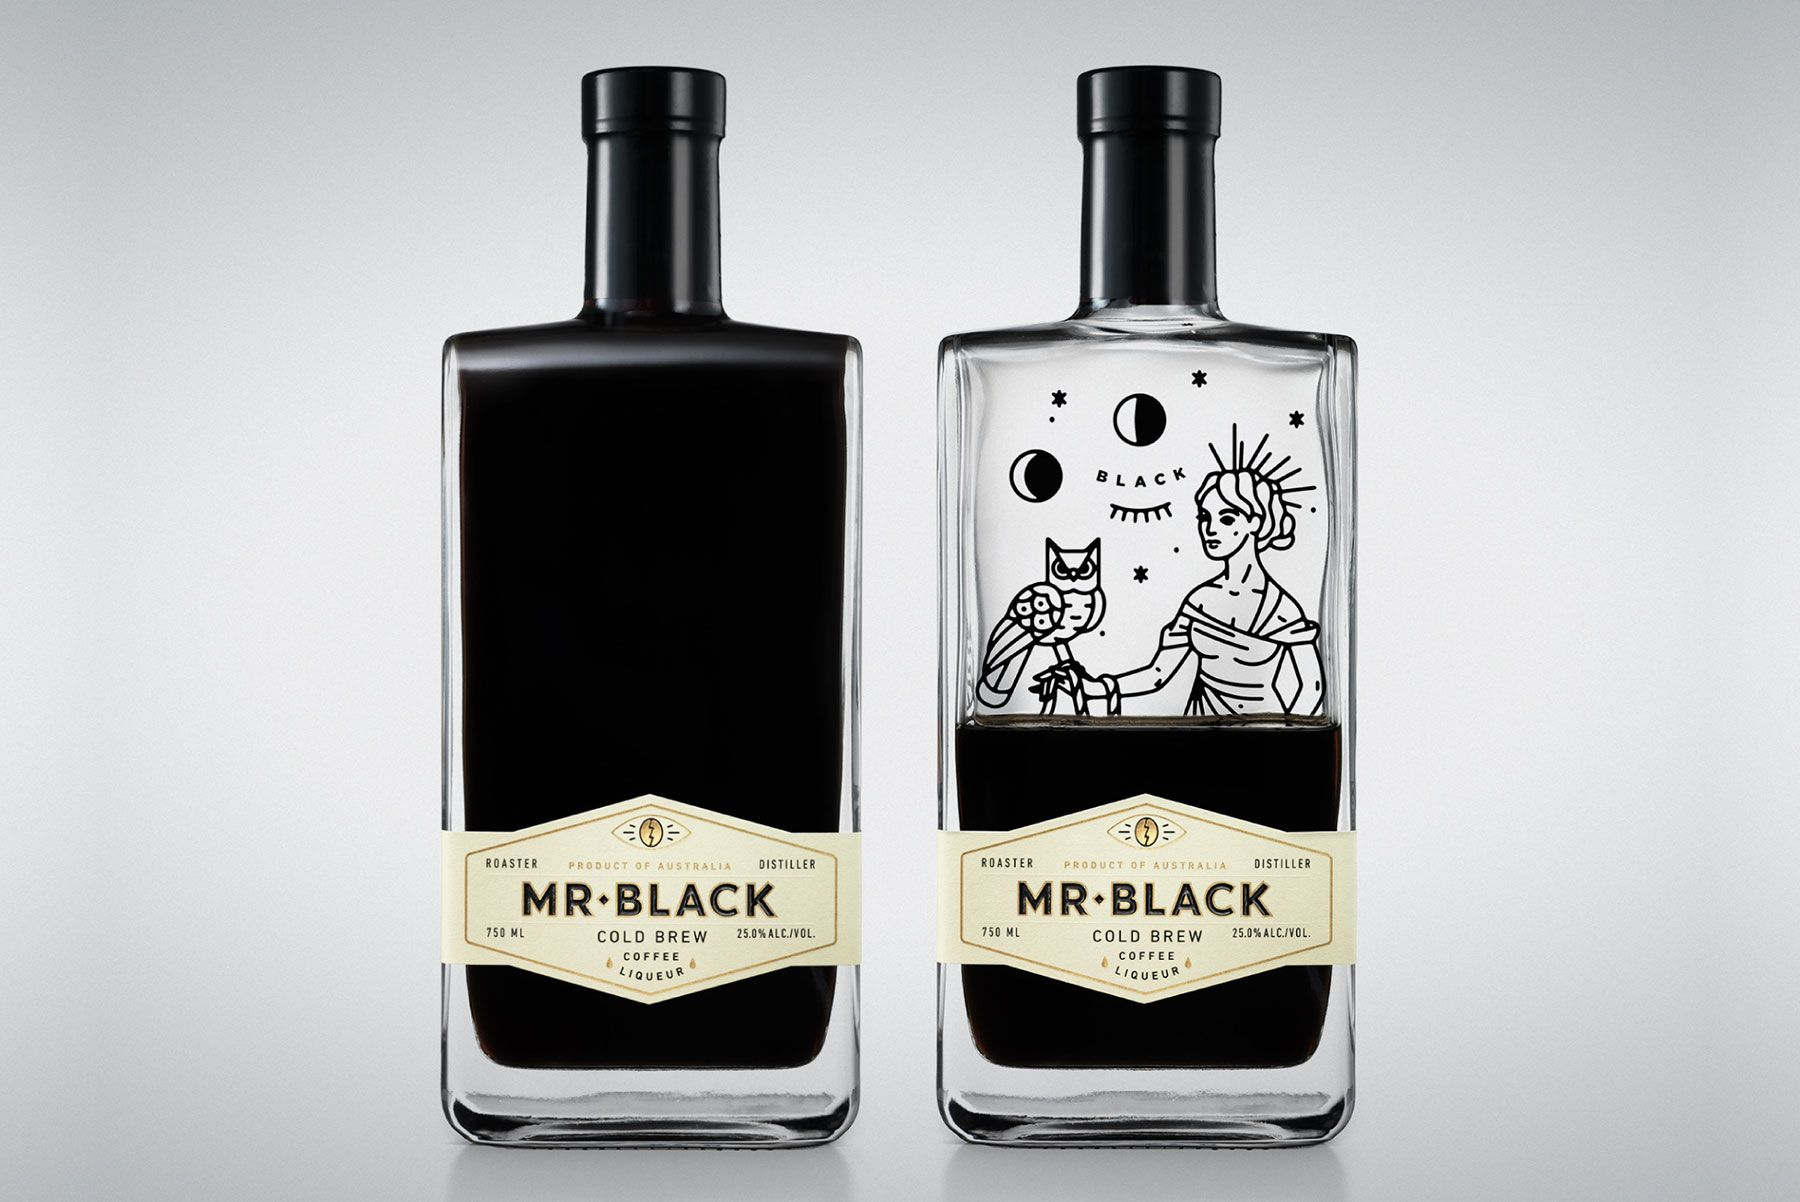 Mr. Black Cold Brew Has a Mystical Look Packaging